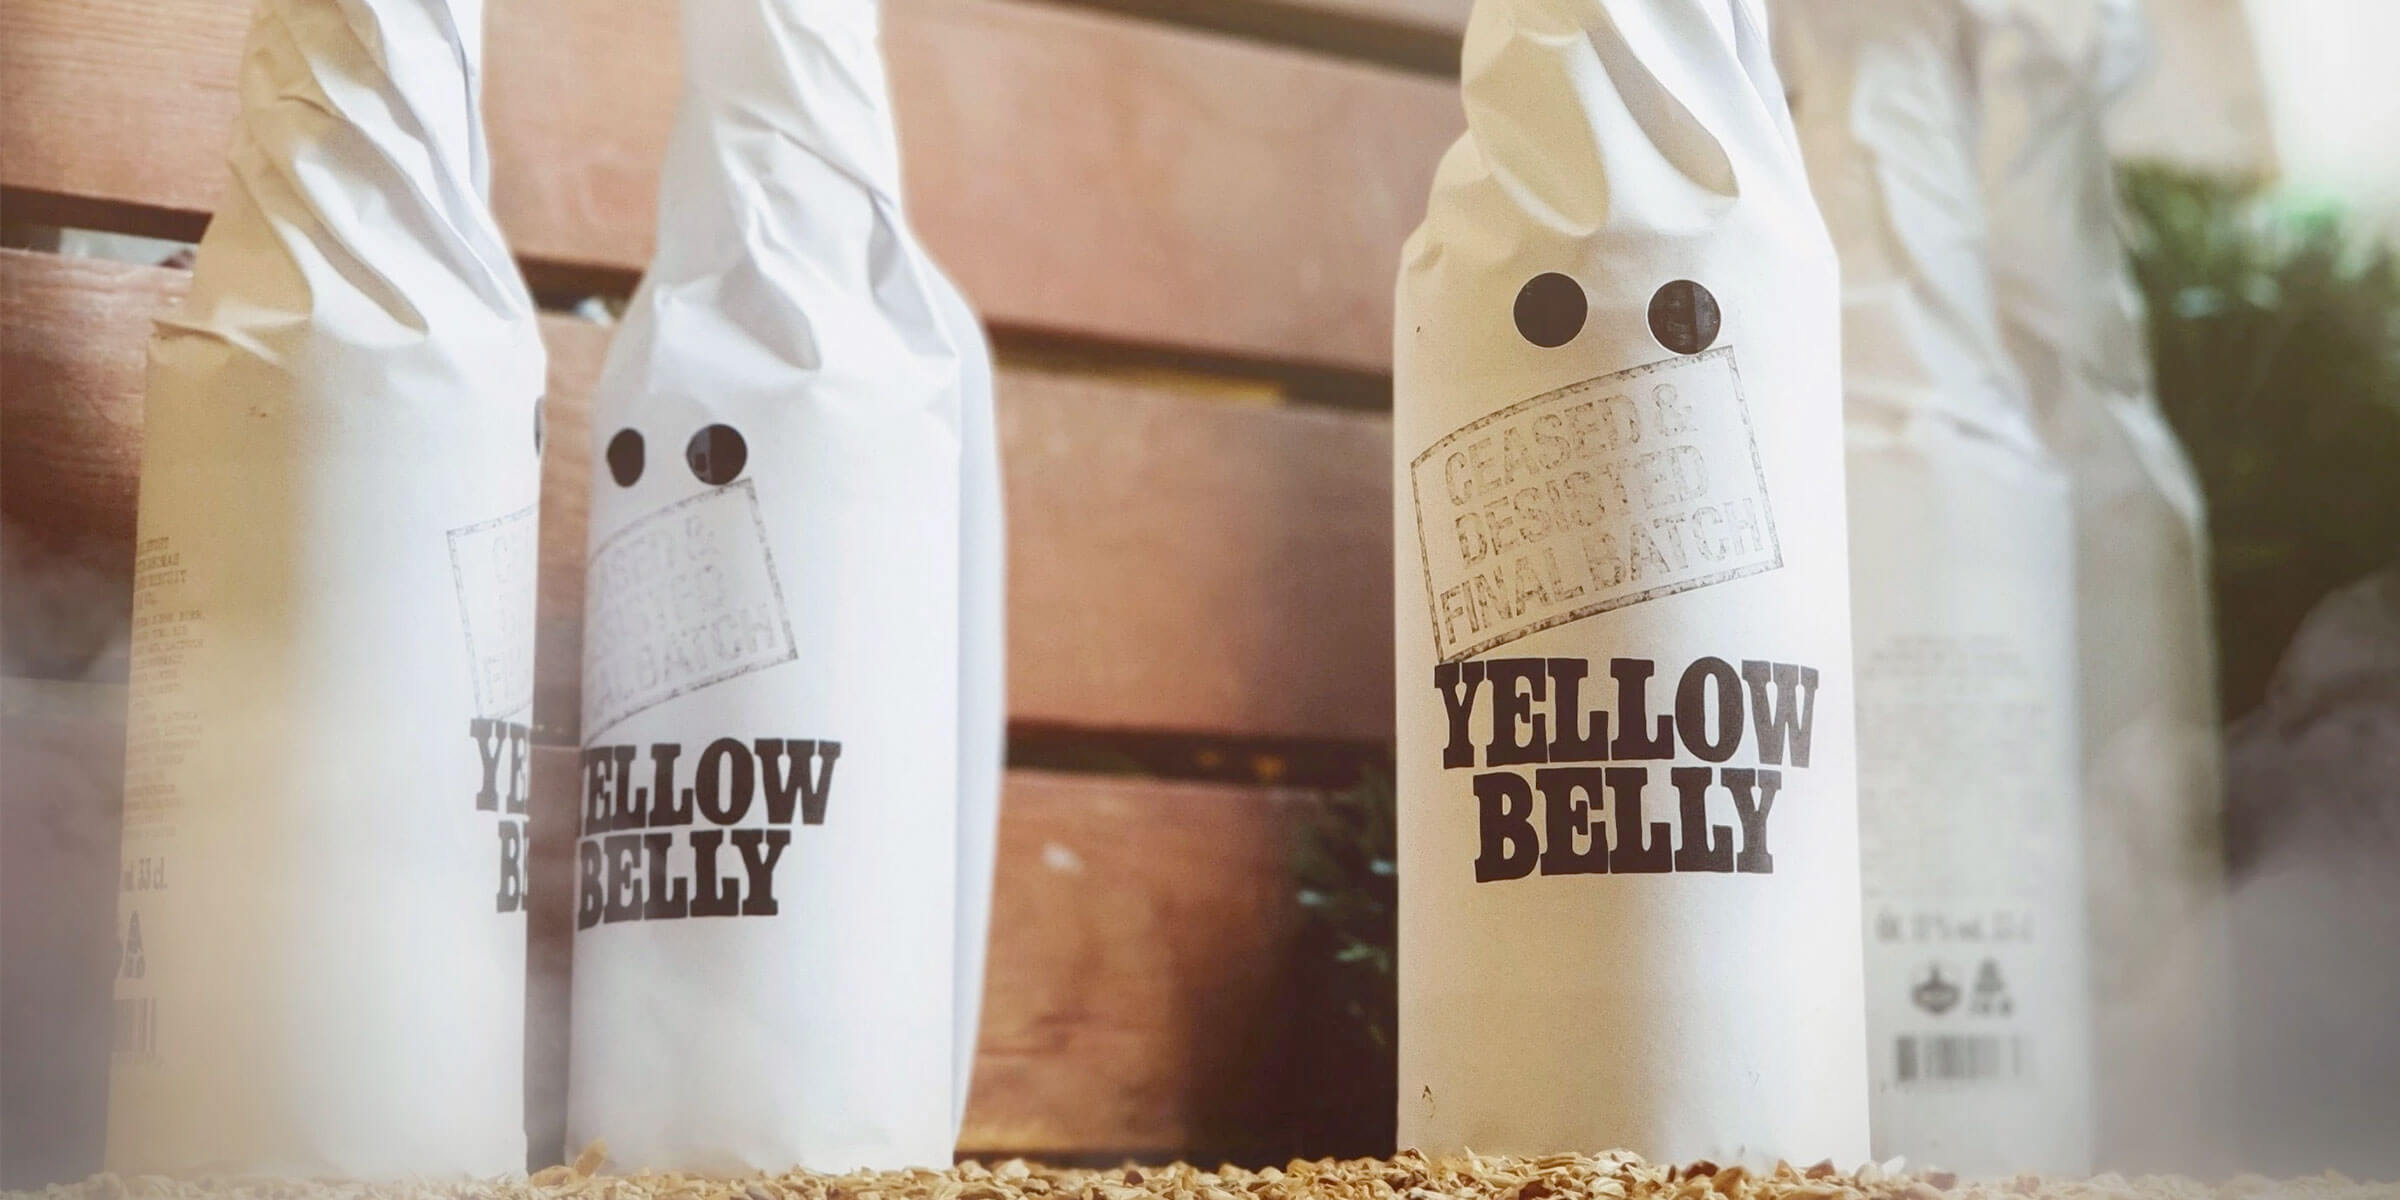 Bottles of Yellow Belly Imperial Stout by Omnipollo and Buxton Brewery